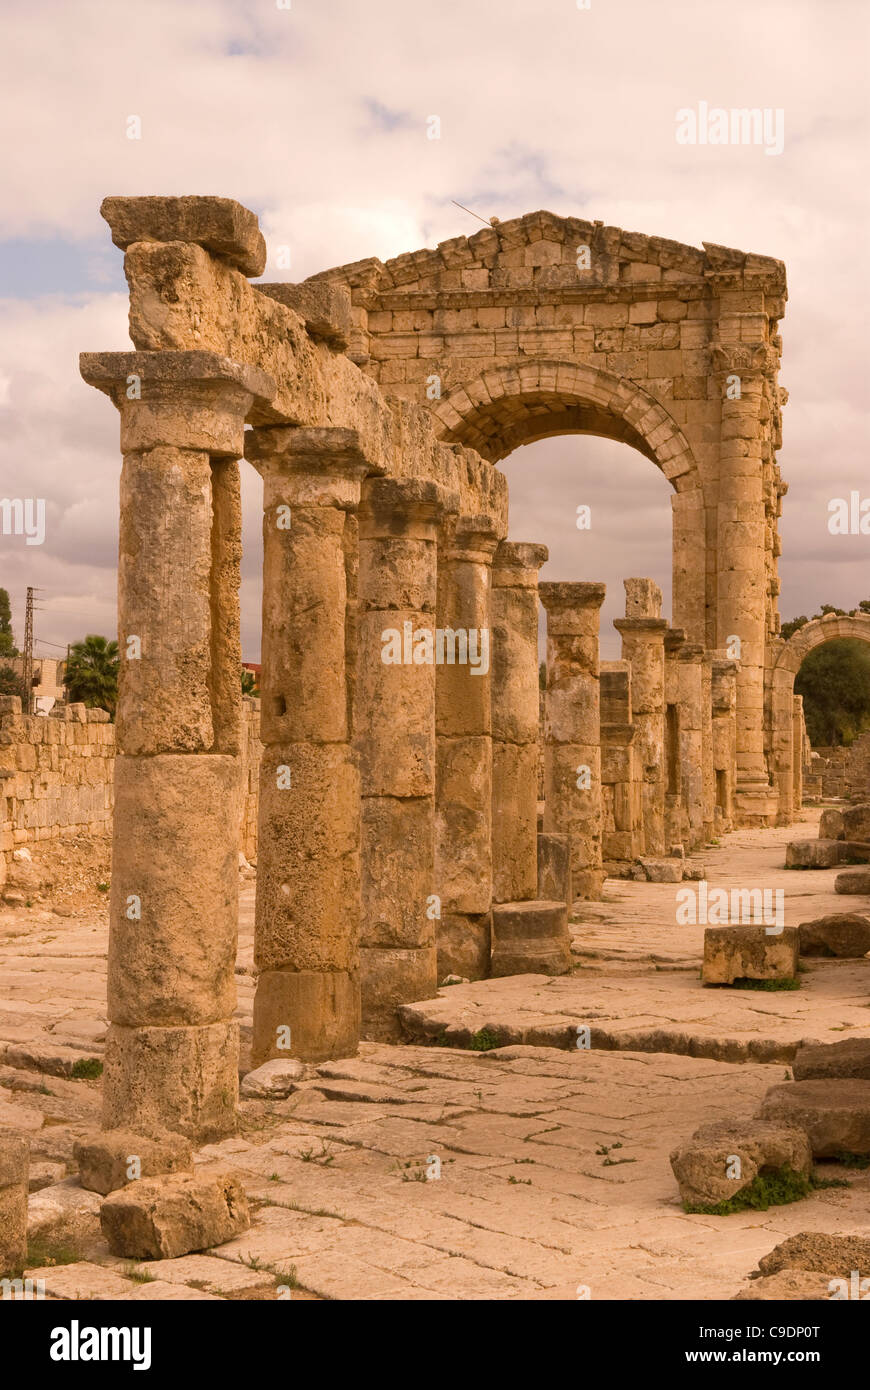 Al-Bass archaeological site, Tyre (Sour), southern Lebanon. Stock Photo